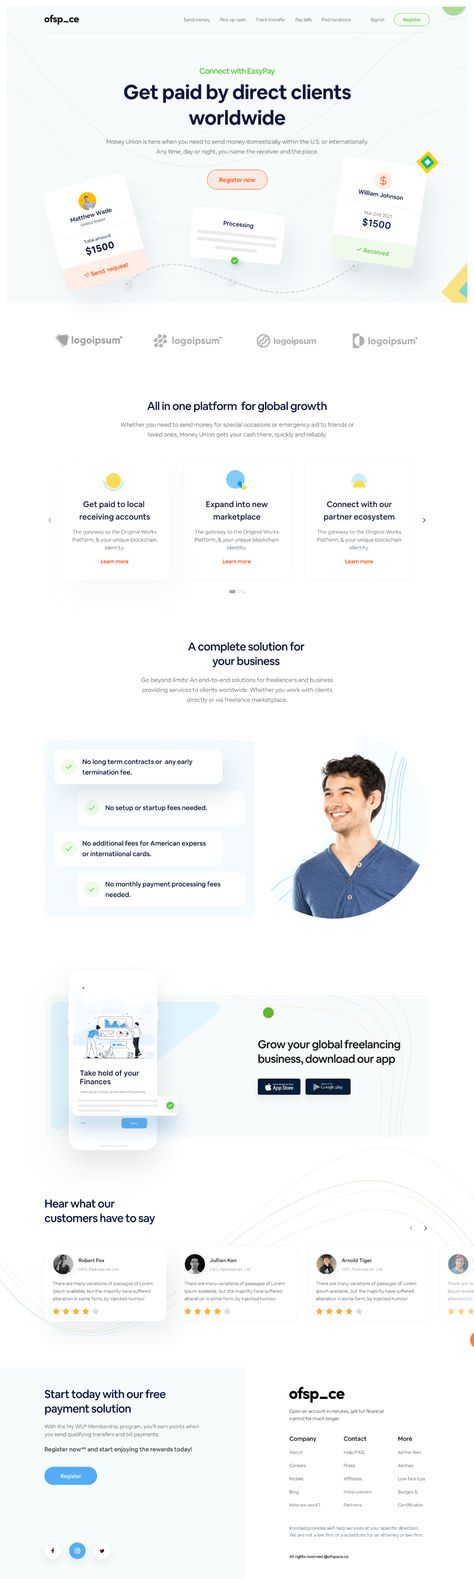 Fintech Home page I Ofspace